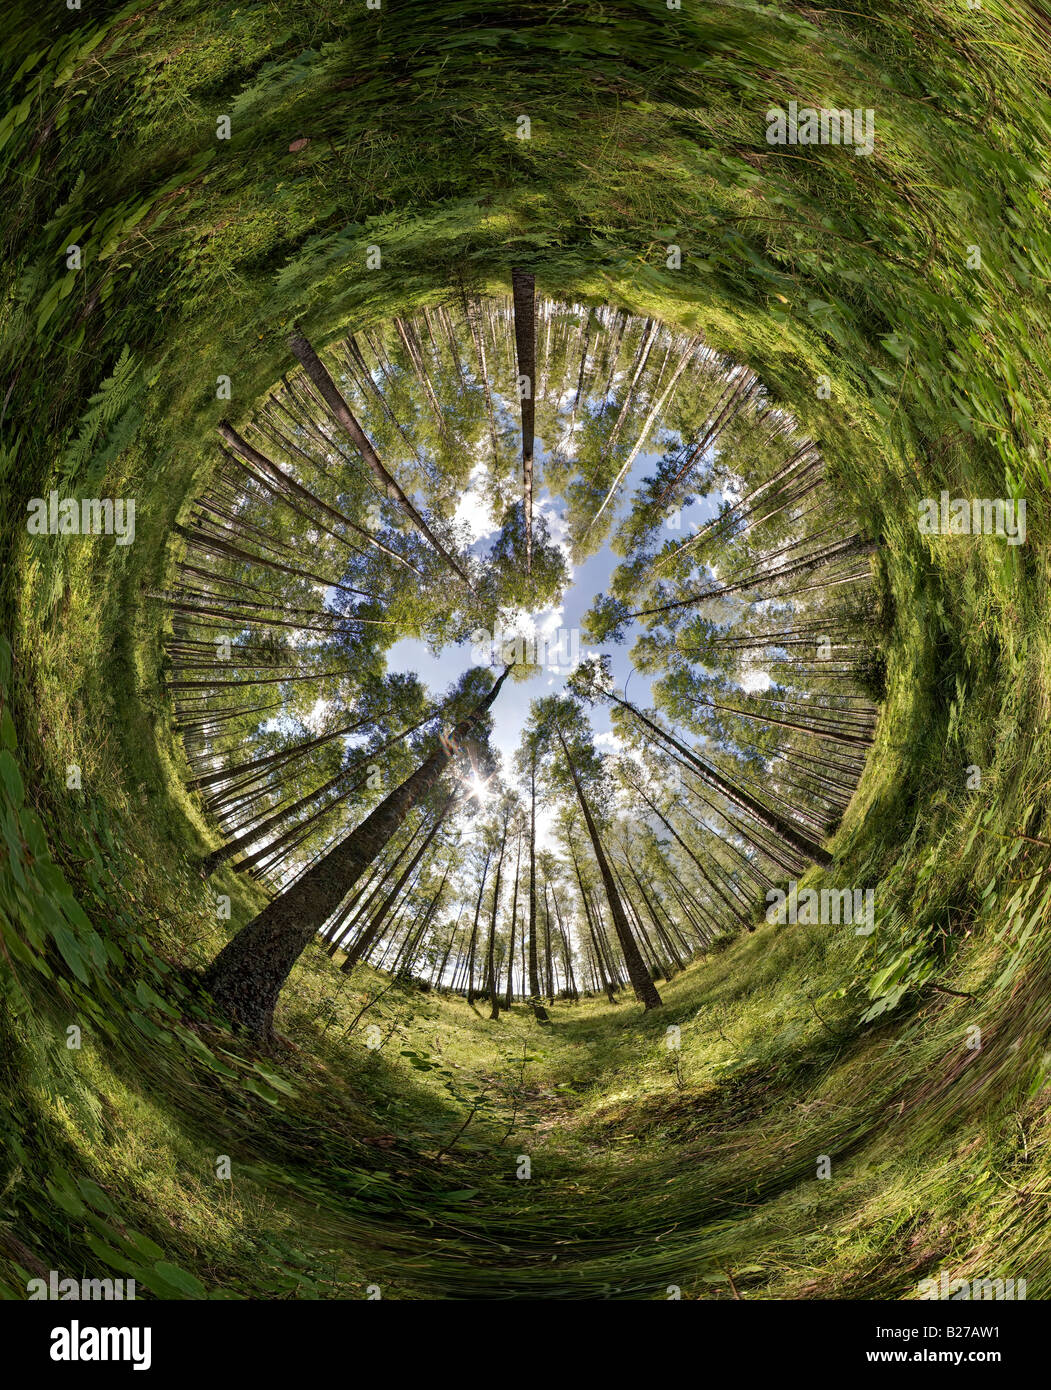 fisheye 360 degrees image from a leaf forest in Sweden Stock Photo